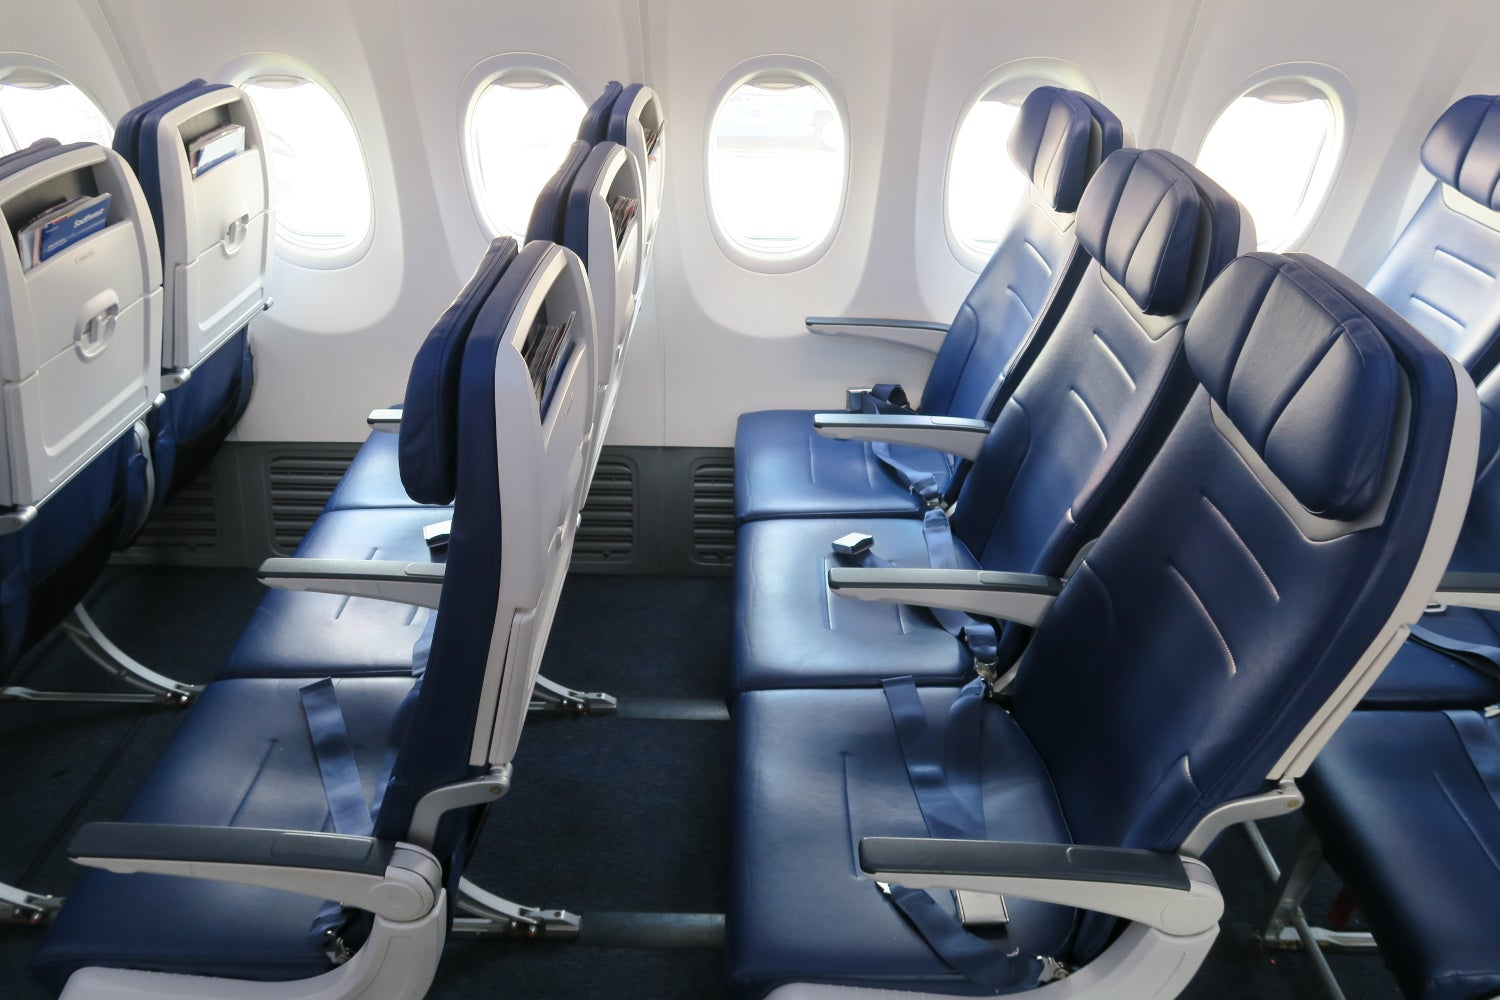 More elbow room in the sky: How to buy a second seat for yourself on U.S. airlines - The Points Guy